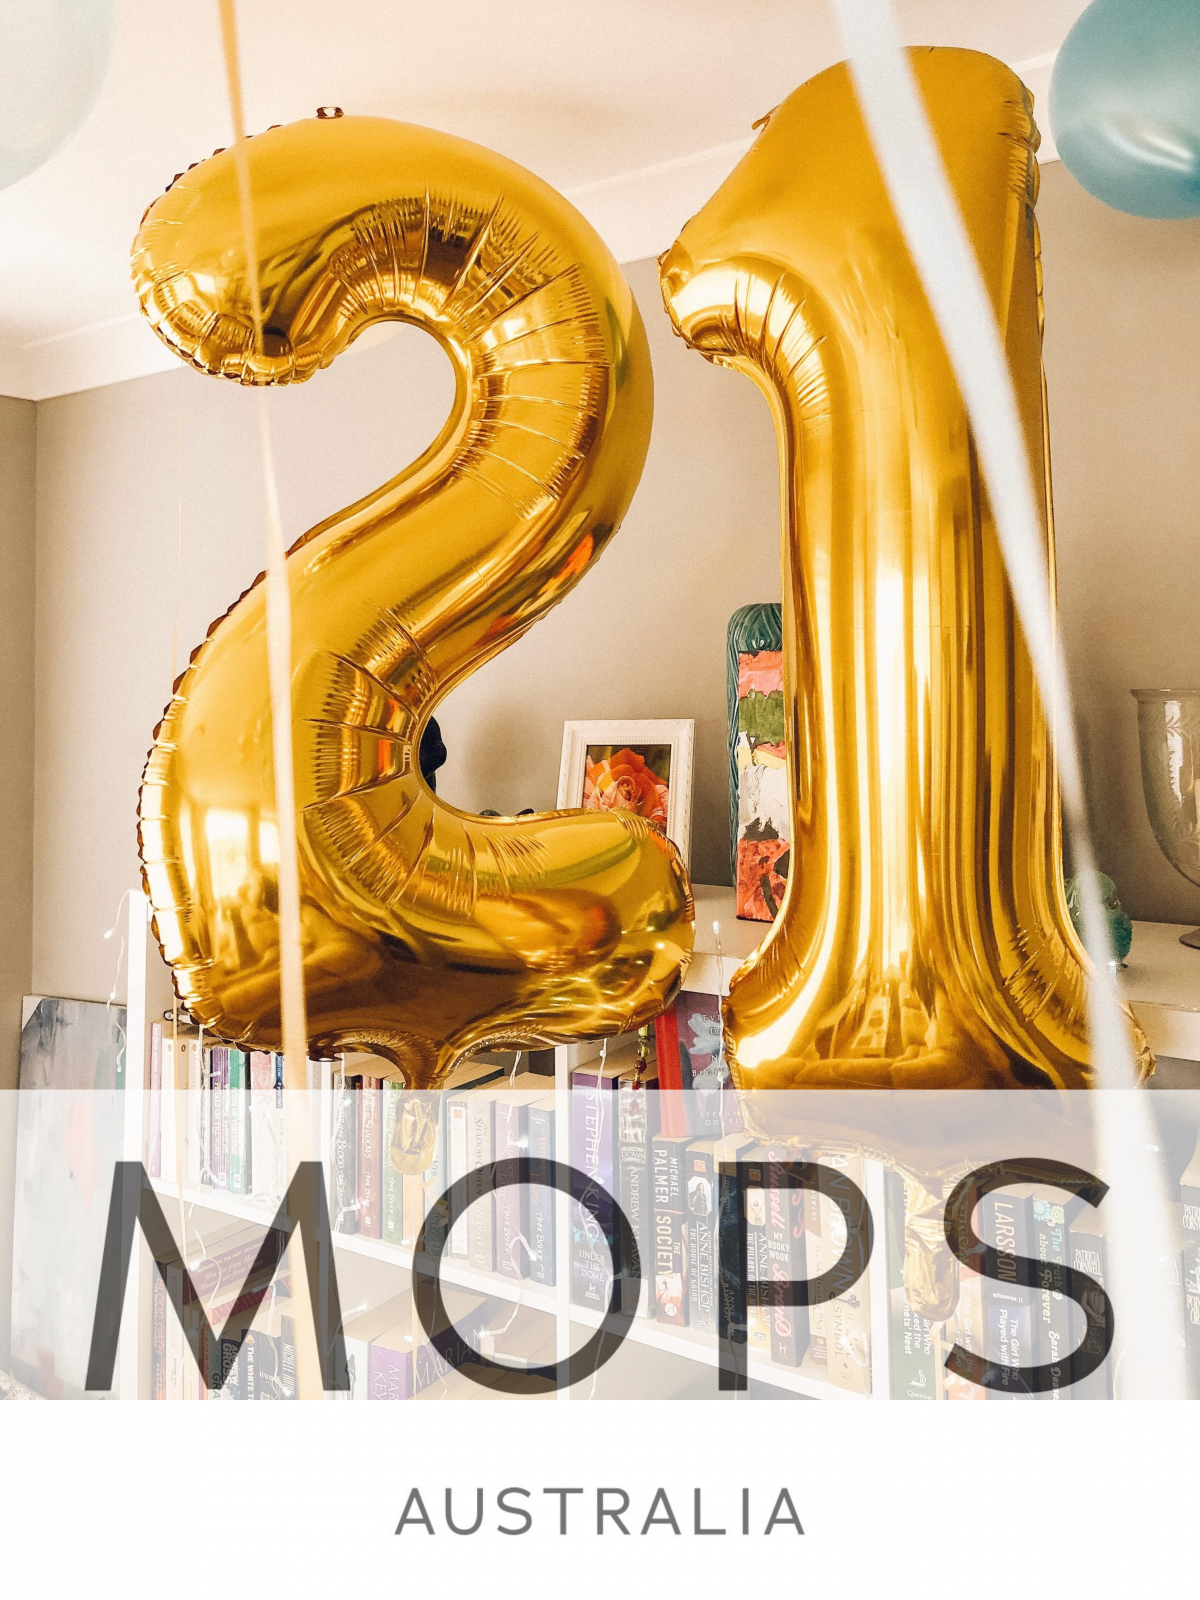 Every Mum Conference – Celebrating 21 years of MOPS Australia